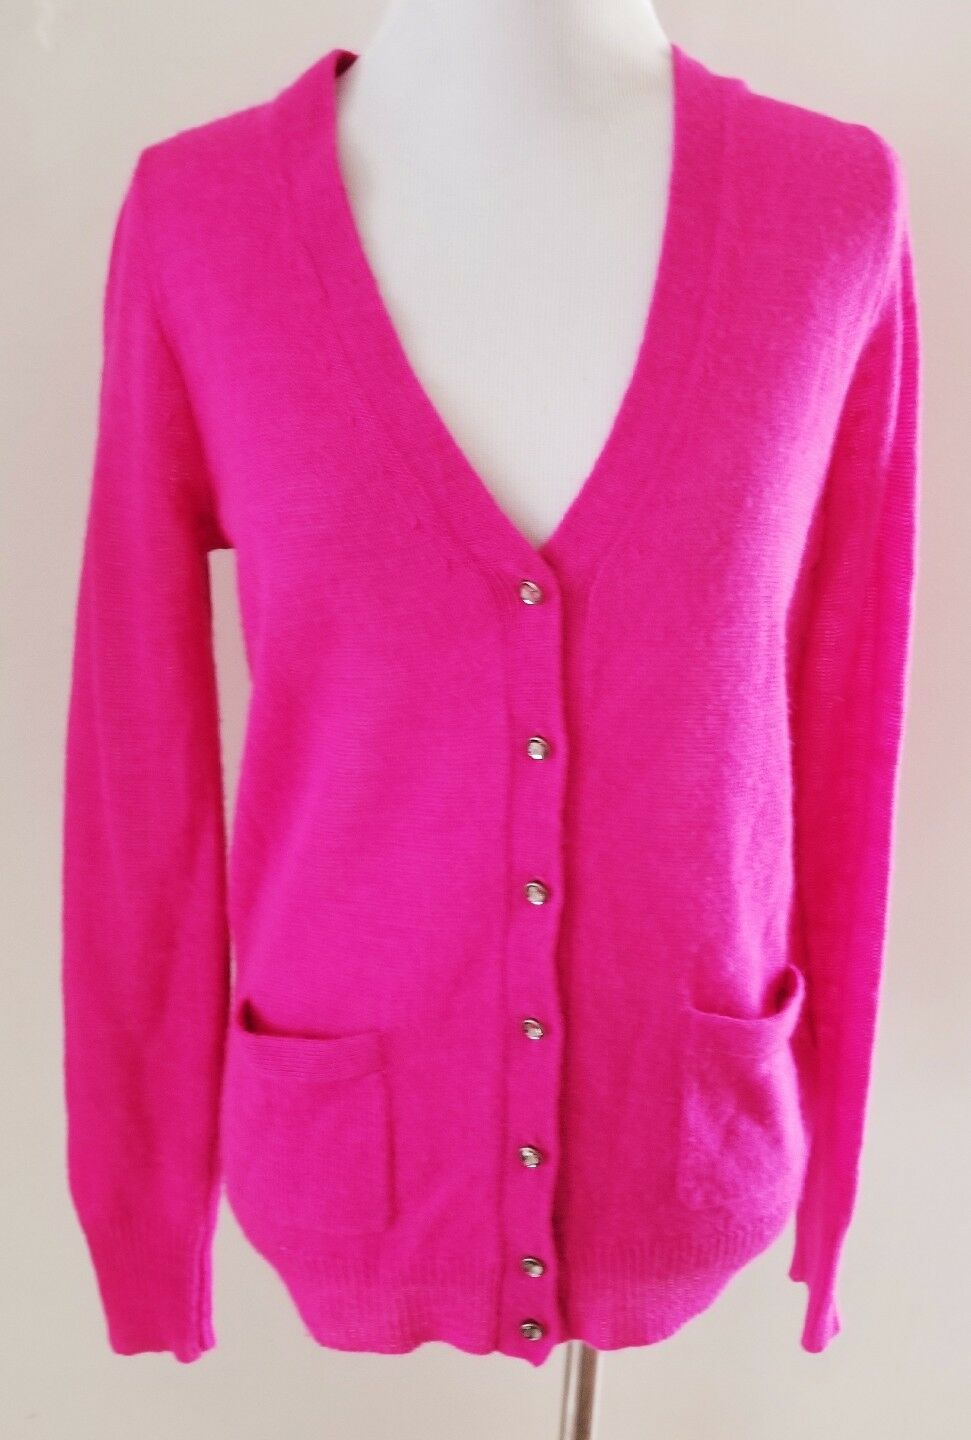 J.CREW ALPACA WOOL HOT PINK SWEATER CARDIGAN SZ S 4 6